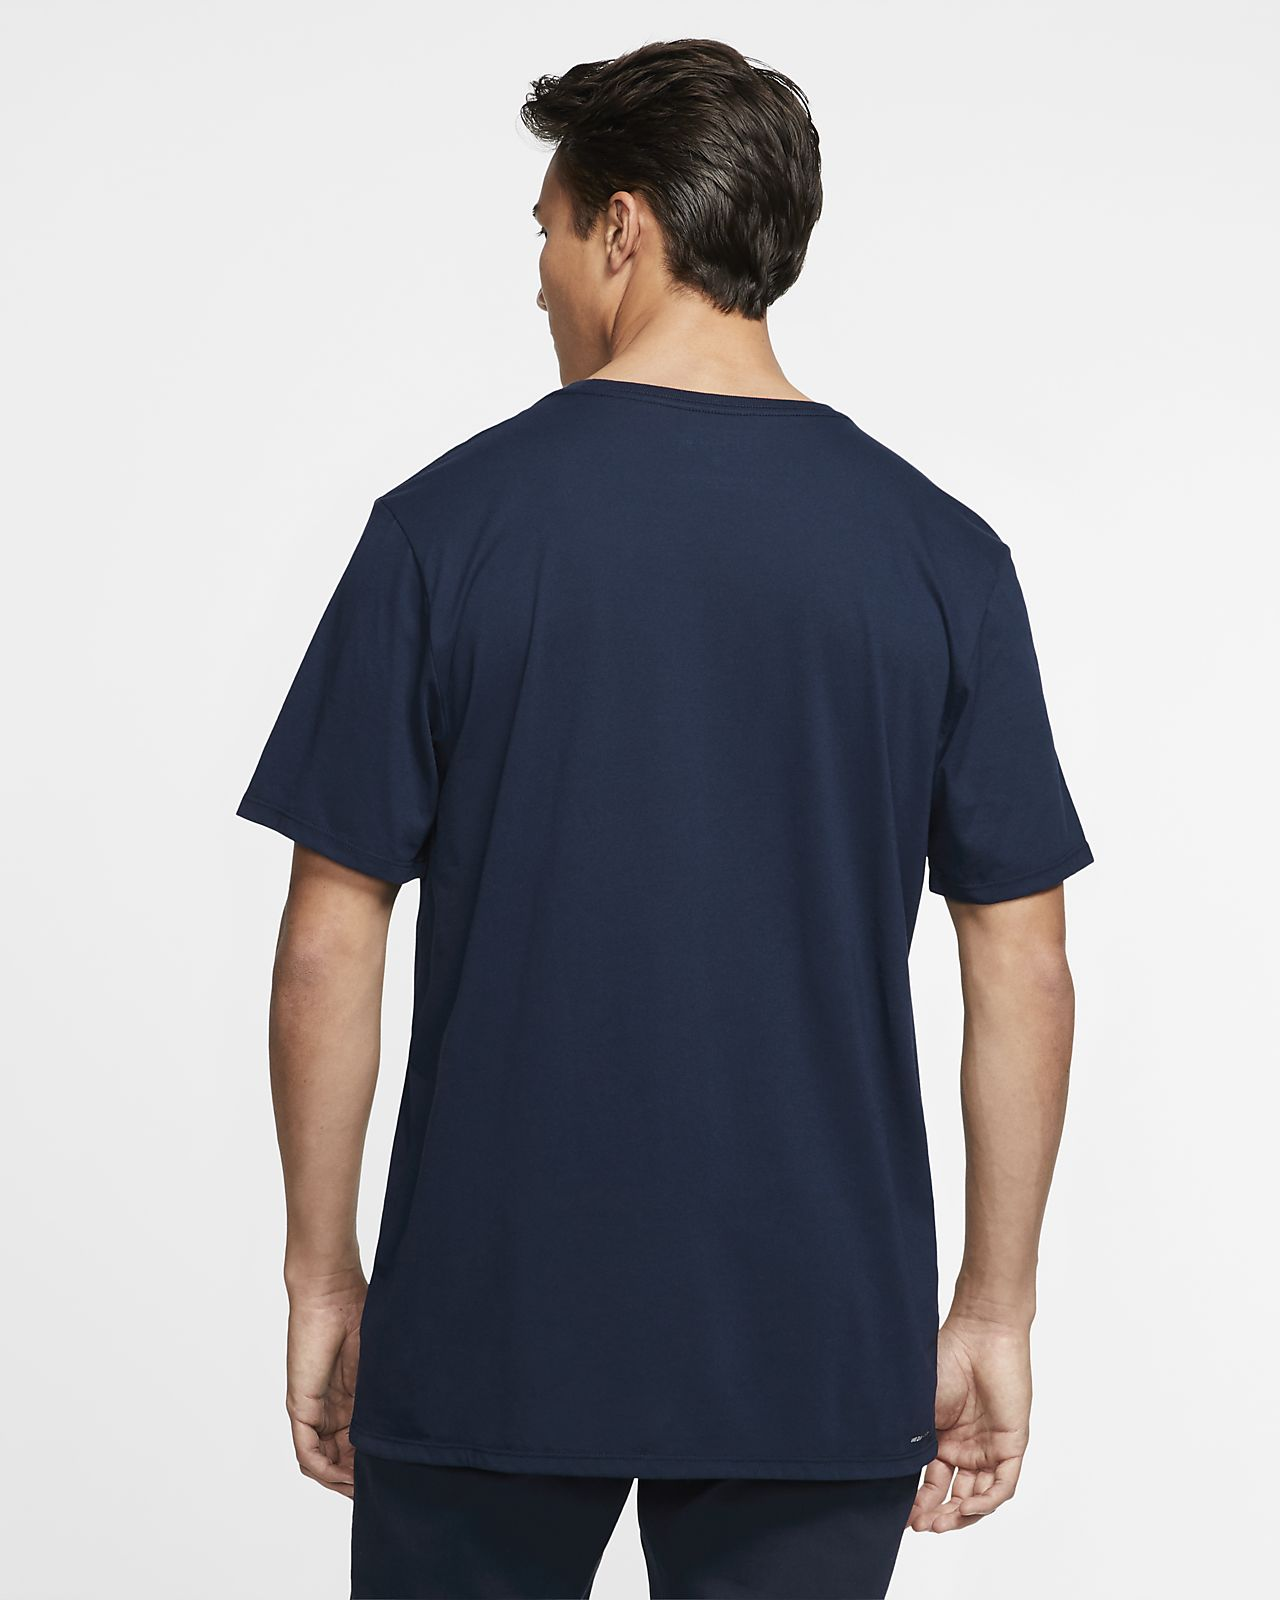 T shirt Hurley Dri FIT Fly Uomo